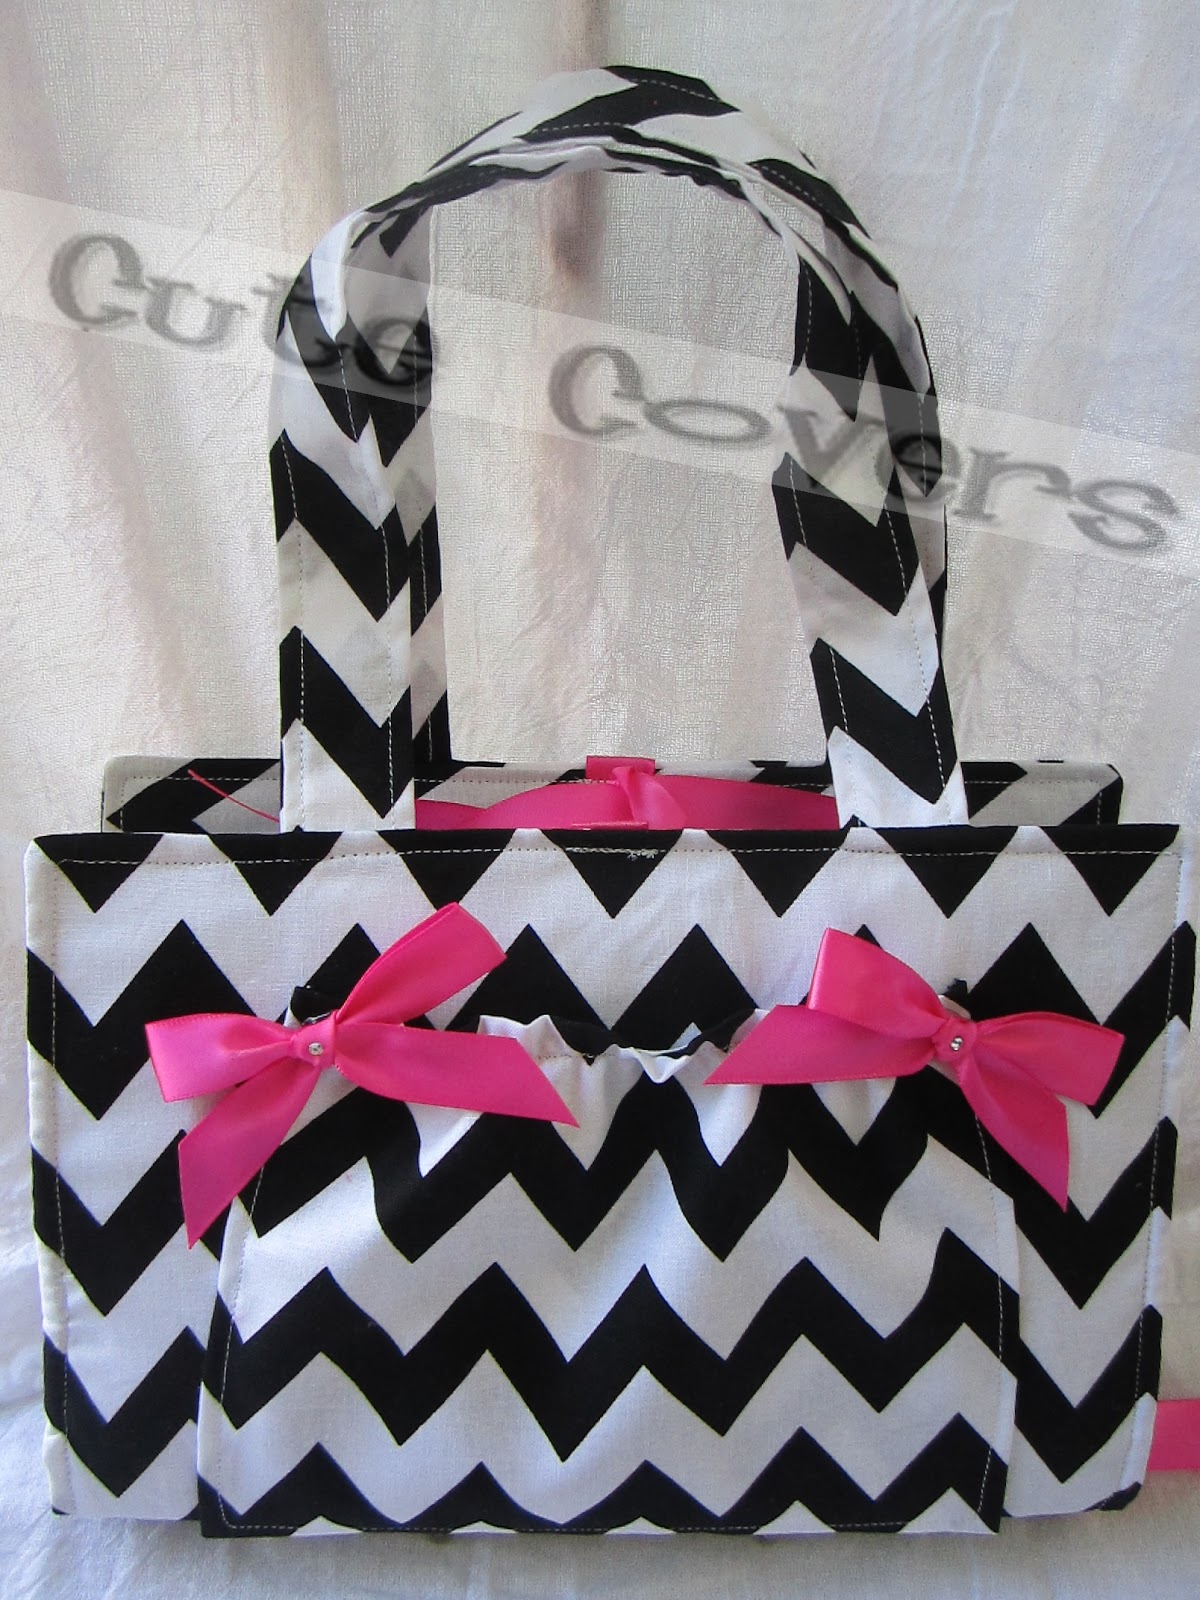 Cute Covers Another Cute Chevron Bible Cover Hot Pink